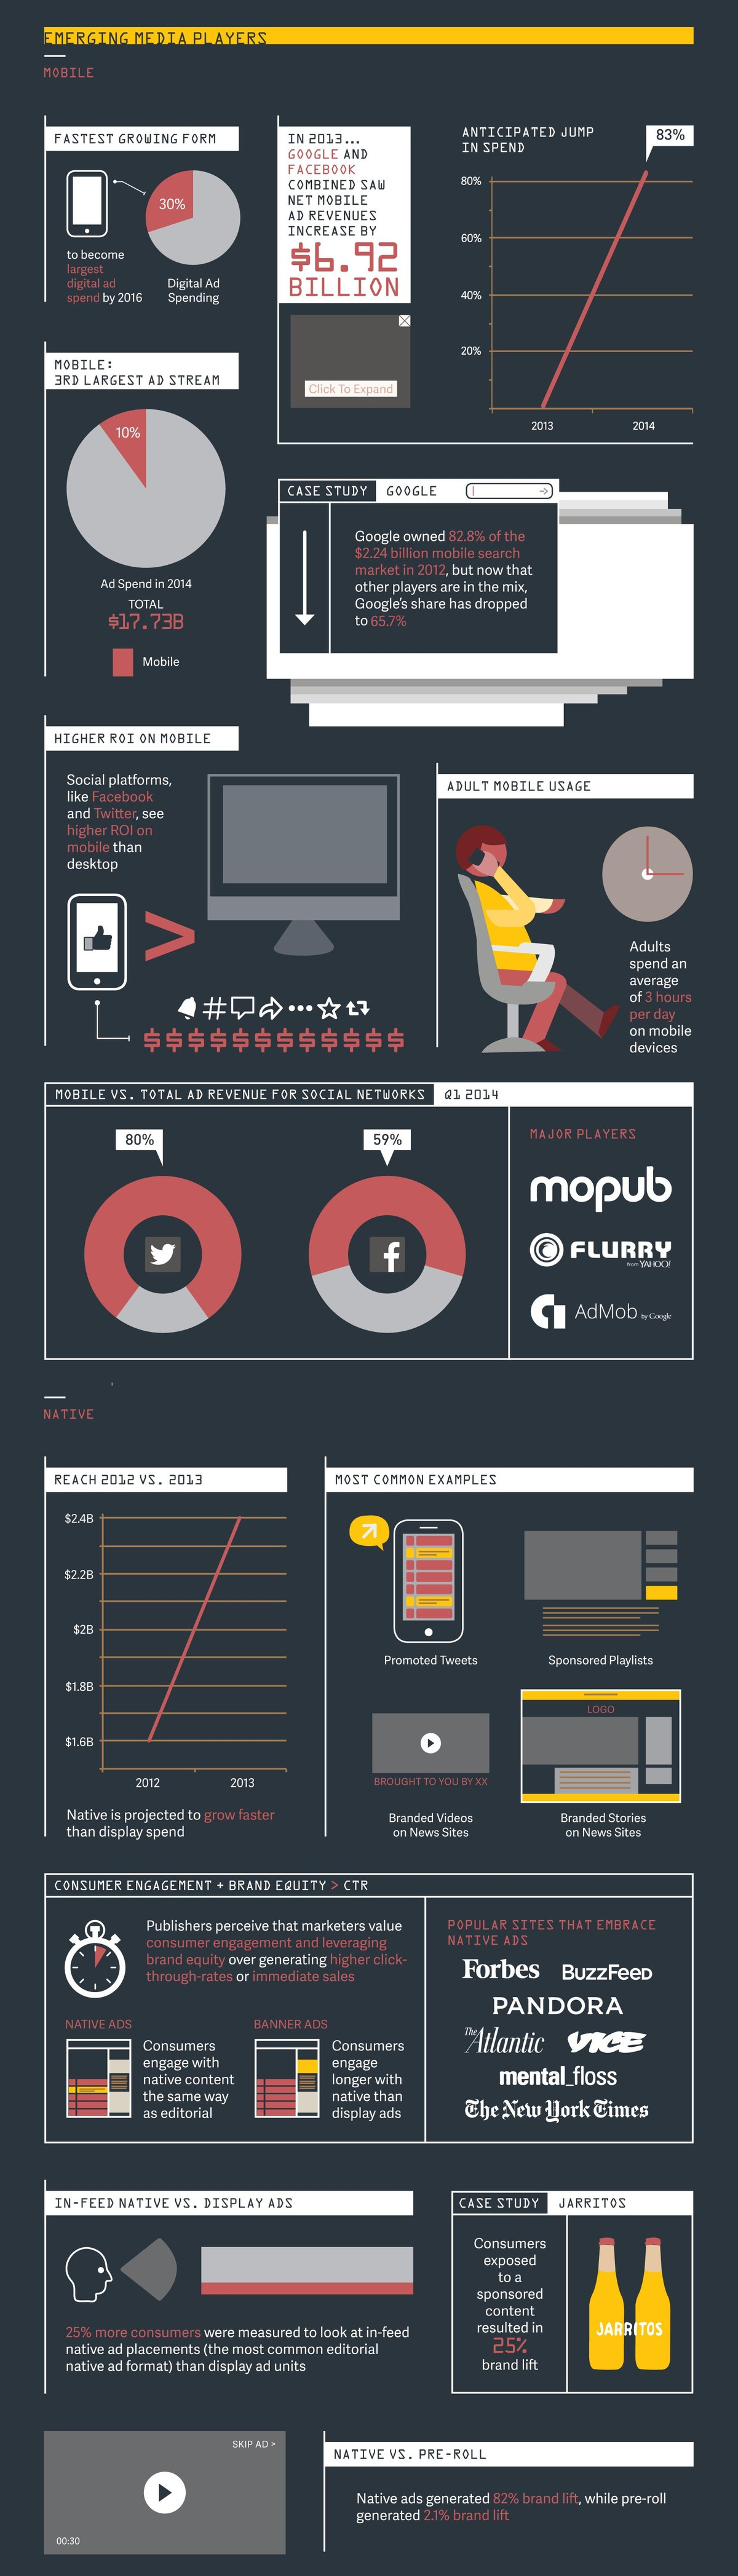 mashable-ad-stats-final-3